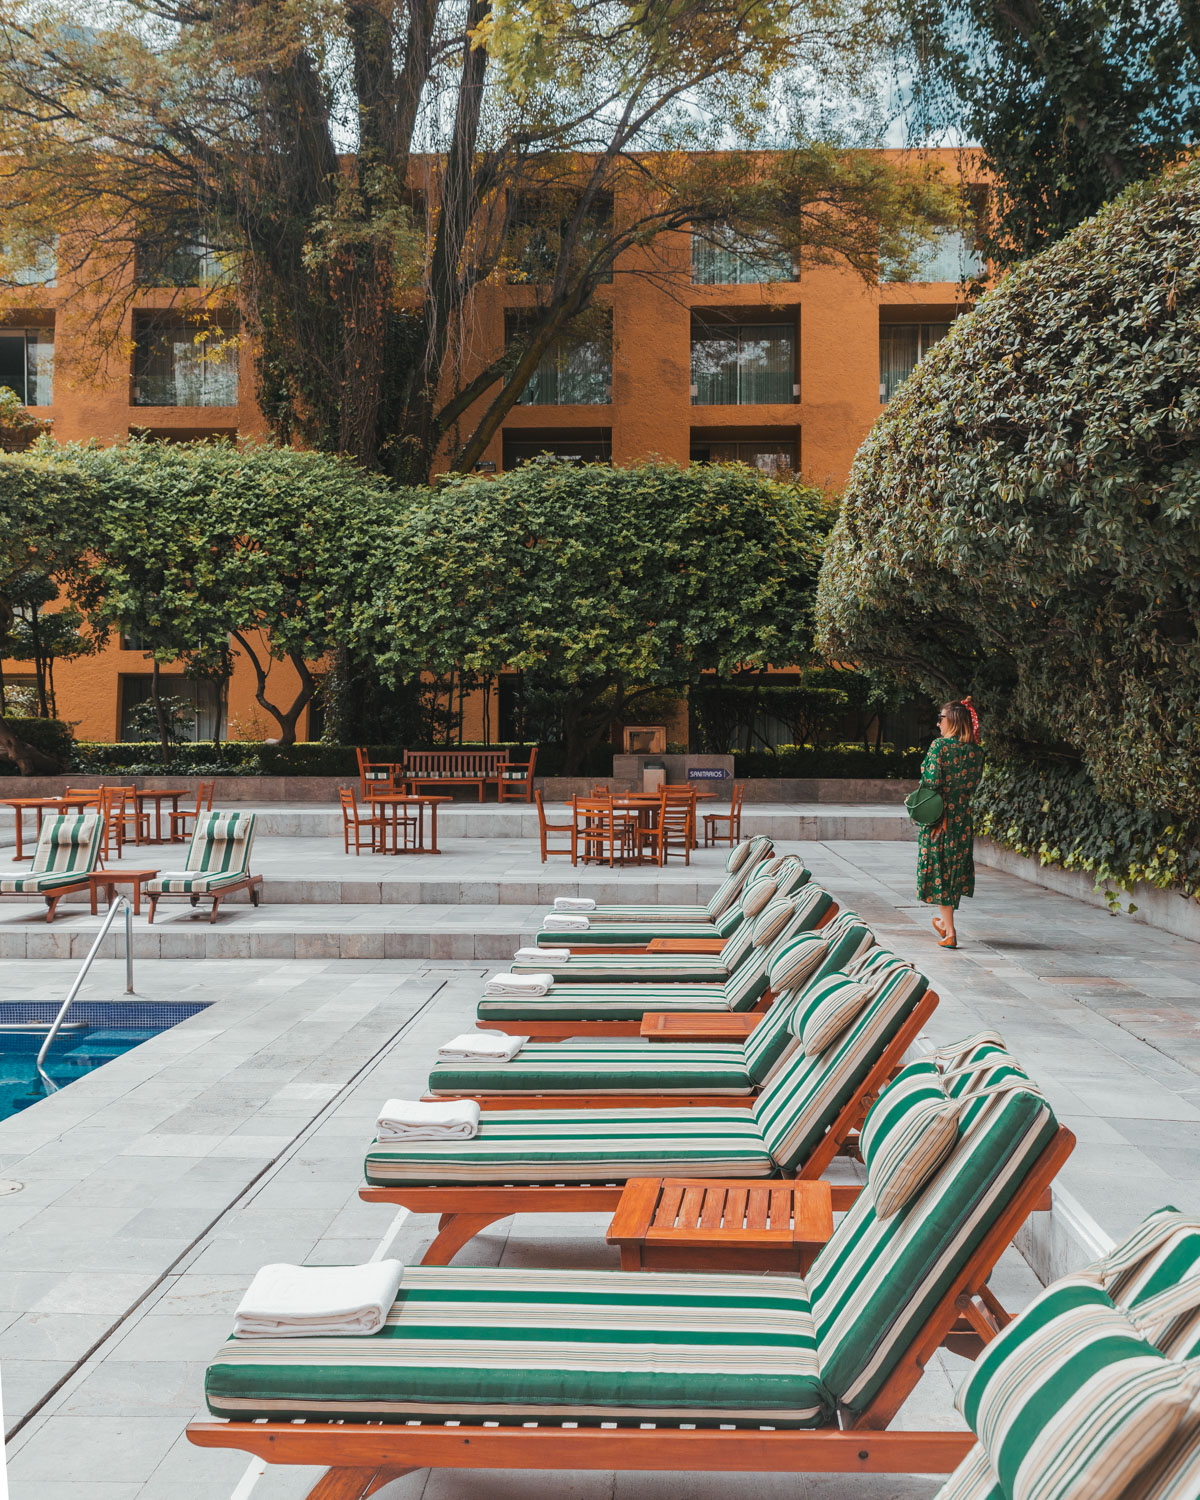 The pool at Camino Real Polanco // The Most Instagrammable Spots in Mexico City #readysetjetset